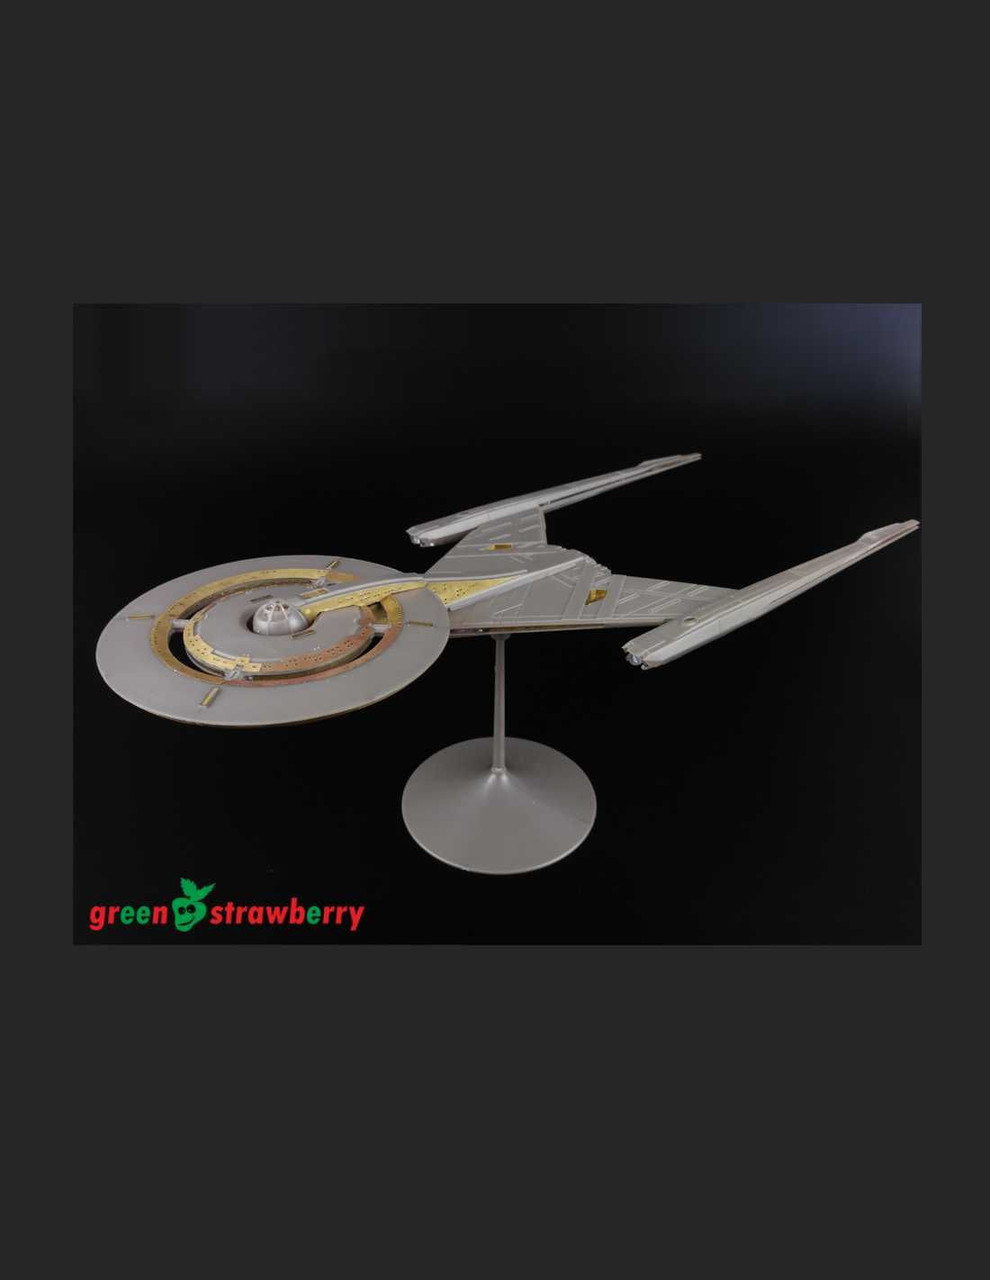 Green Strawberry 08319-1/2500 - U.S.S. Discovery NCC-1031 Photoetch Set